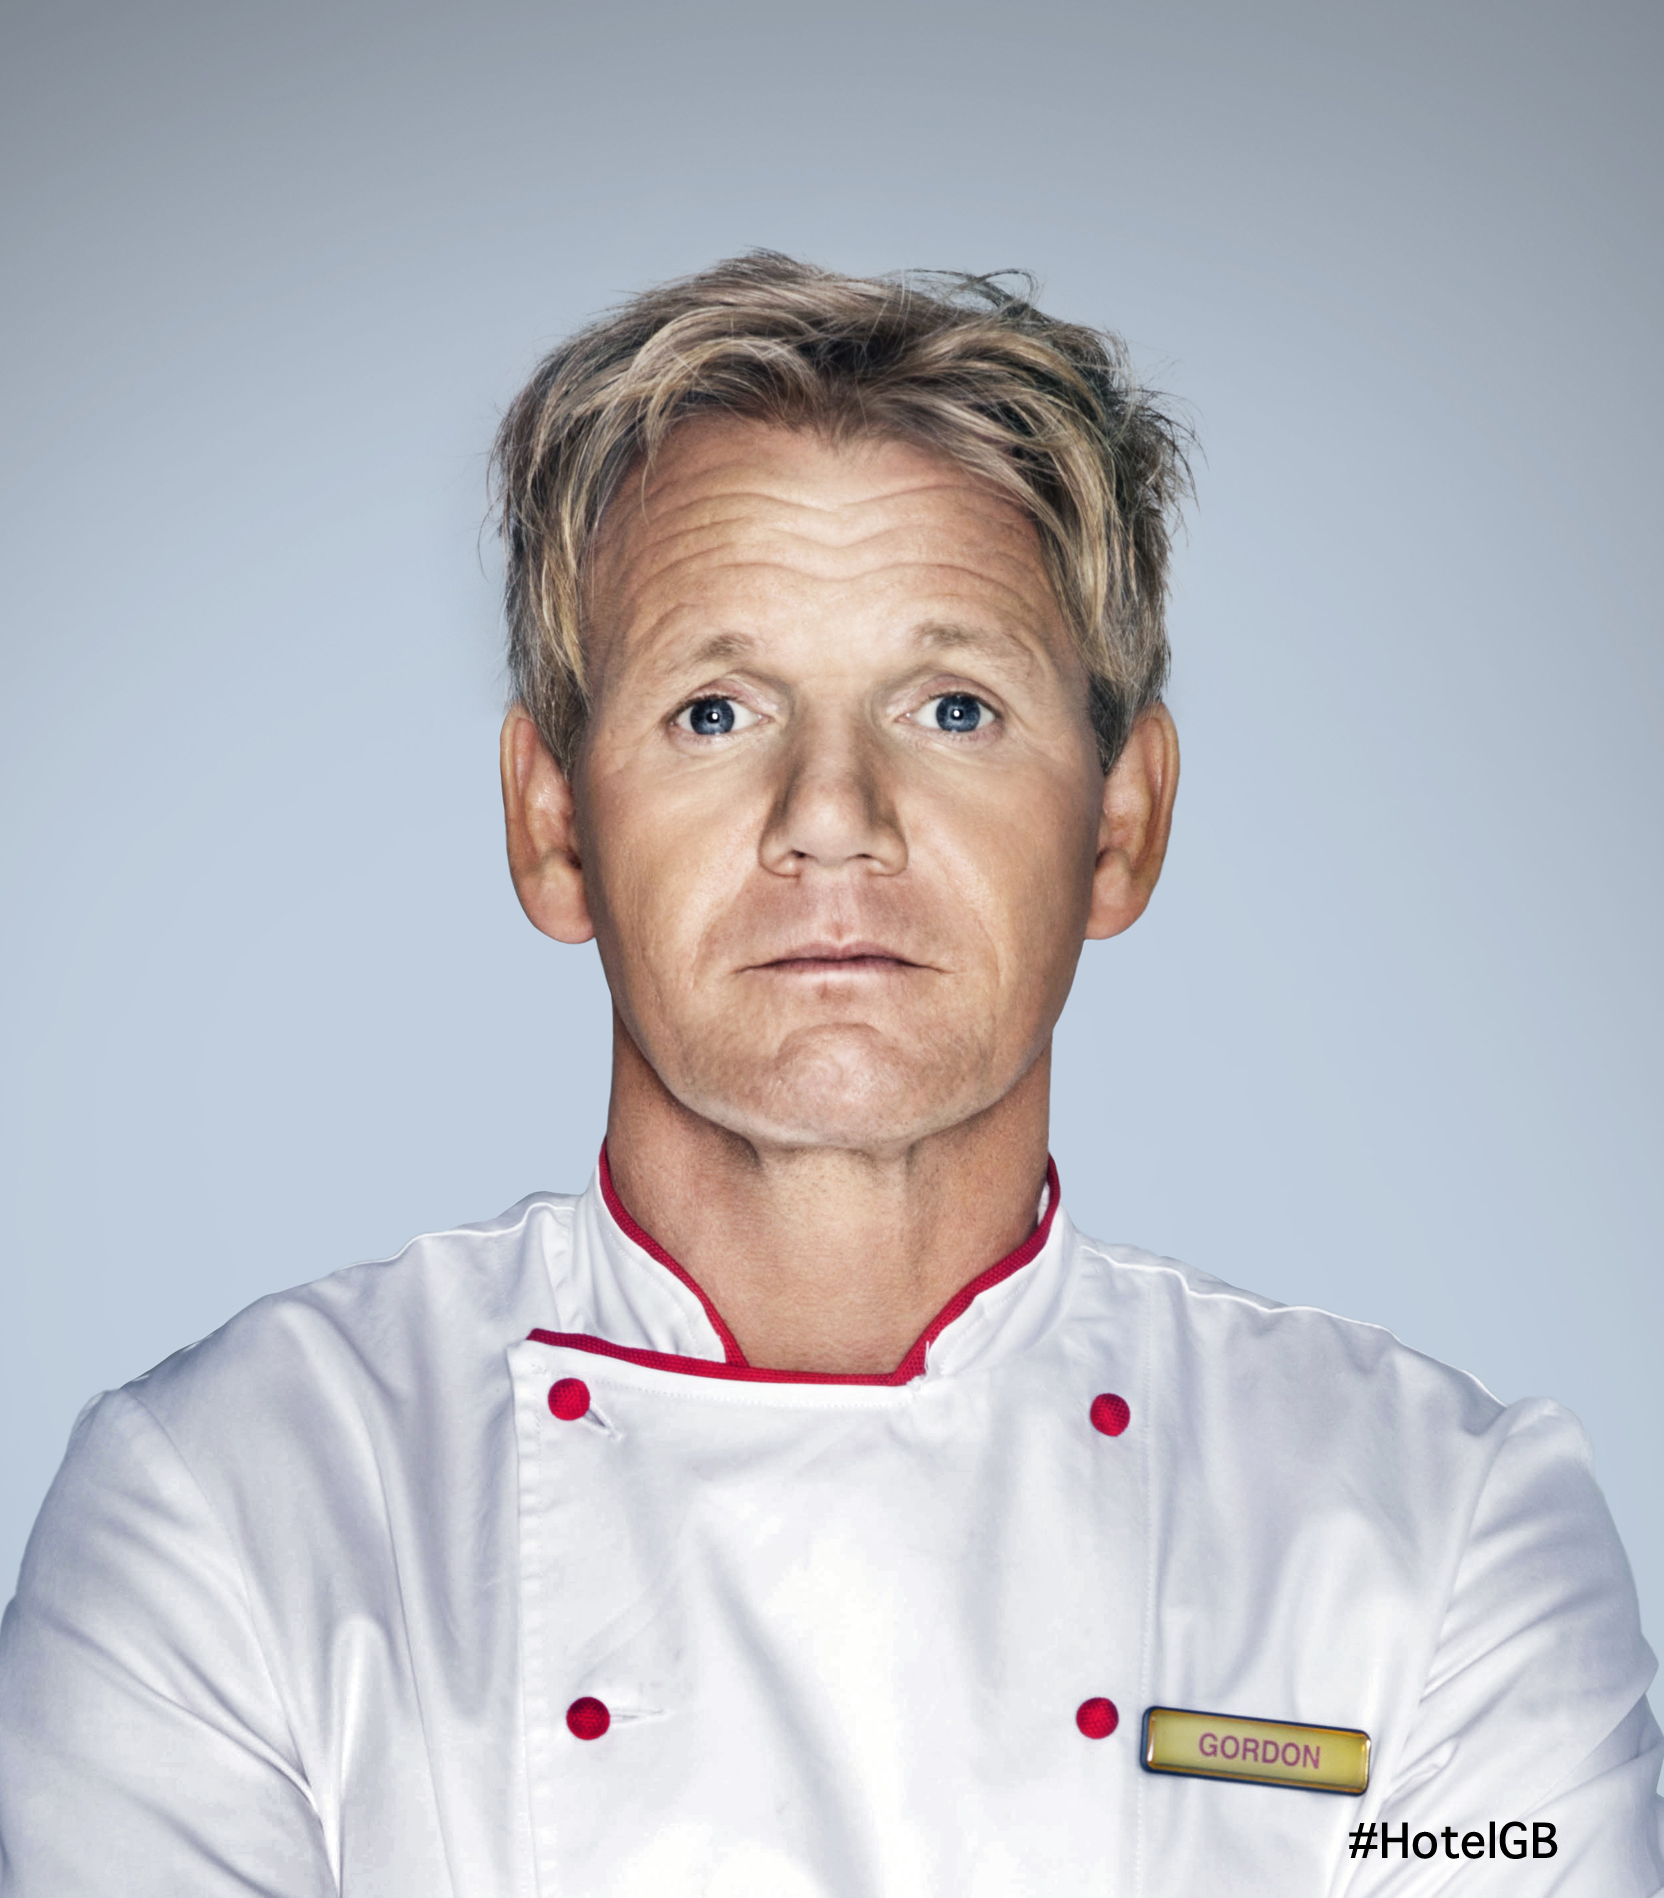 Gordon Ramsay 'Hotel GB' interview: 'Unemployed have it ...